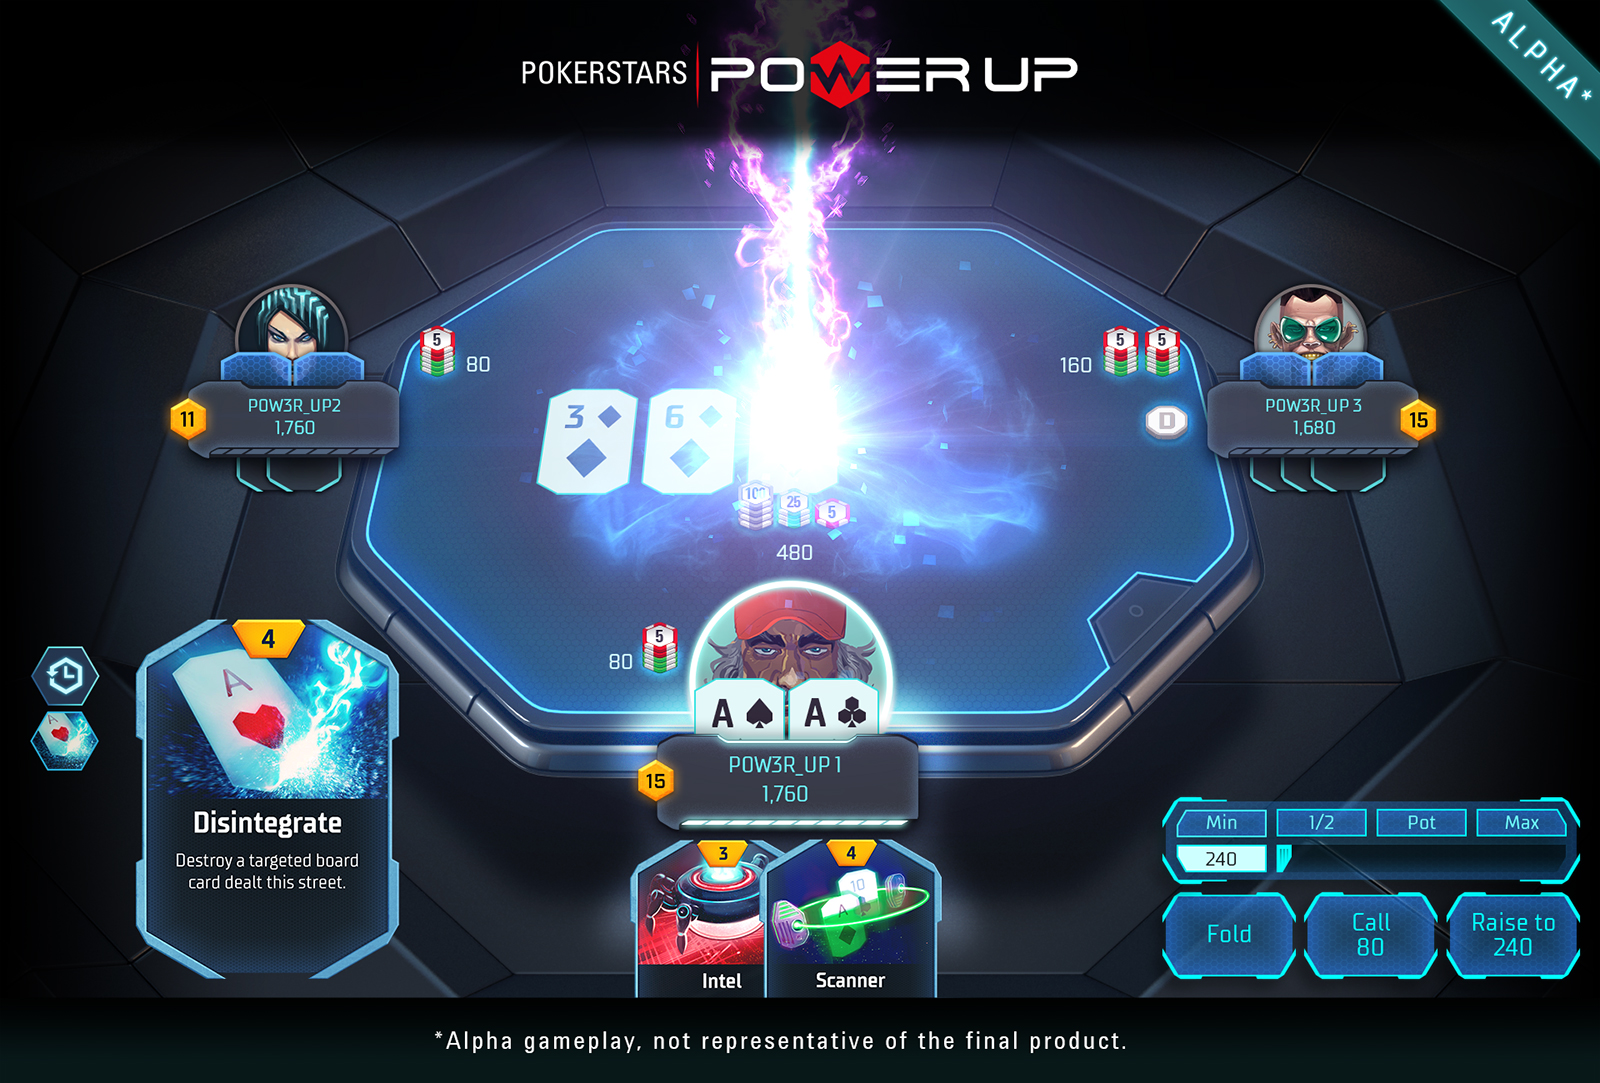 PokerStars Tests New Poker Game, Power Up 102